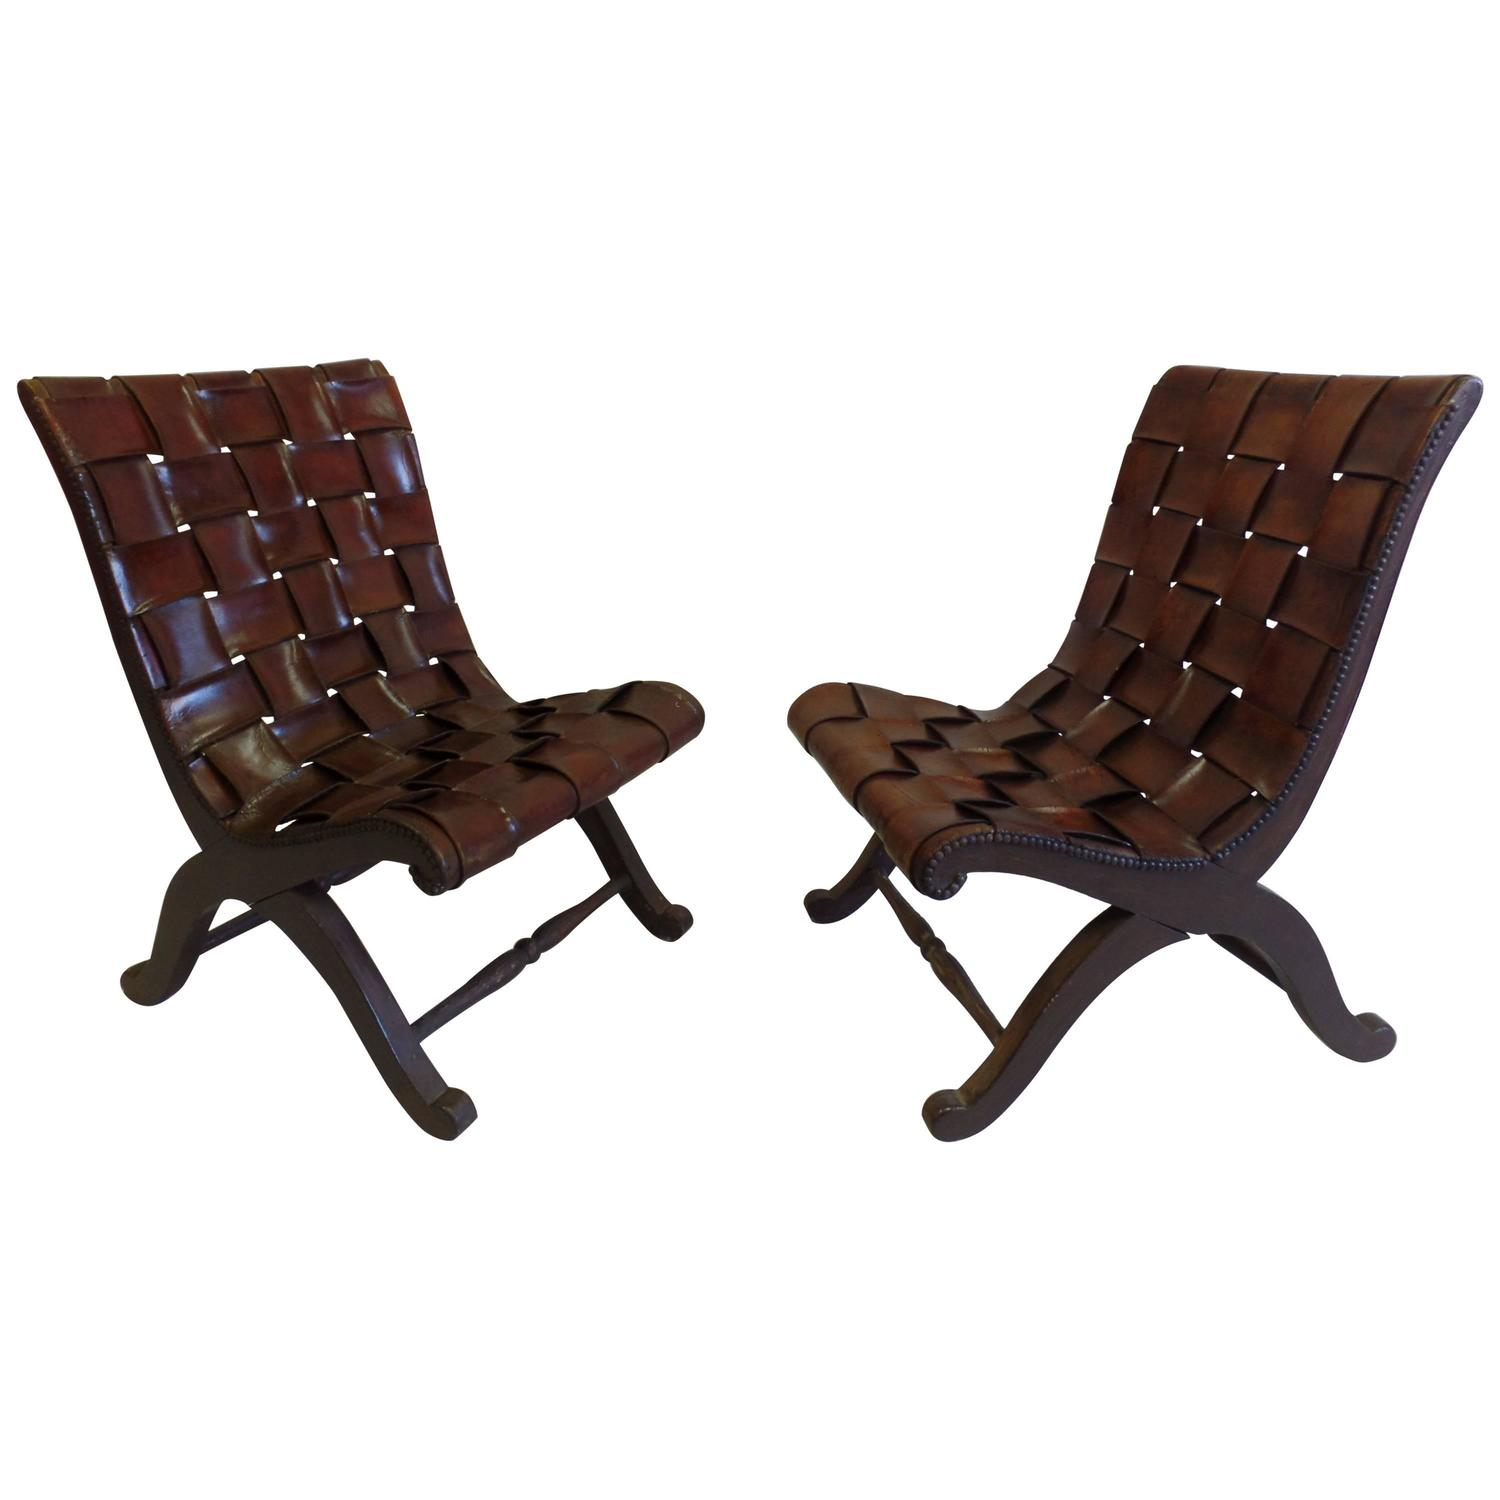 Pair of Spanish Modern Neoclassical Leather Strap Chairs by Pierre